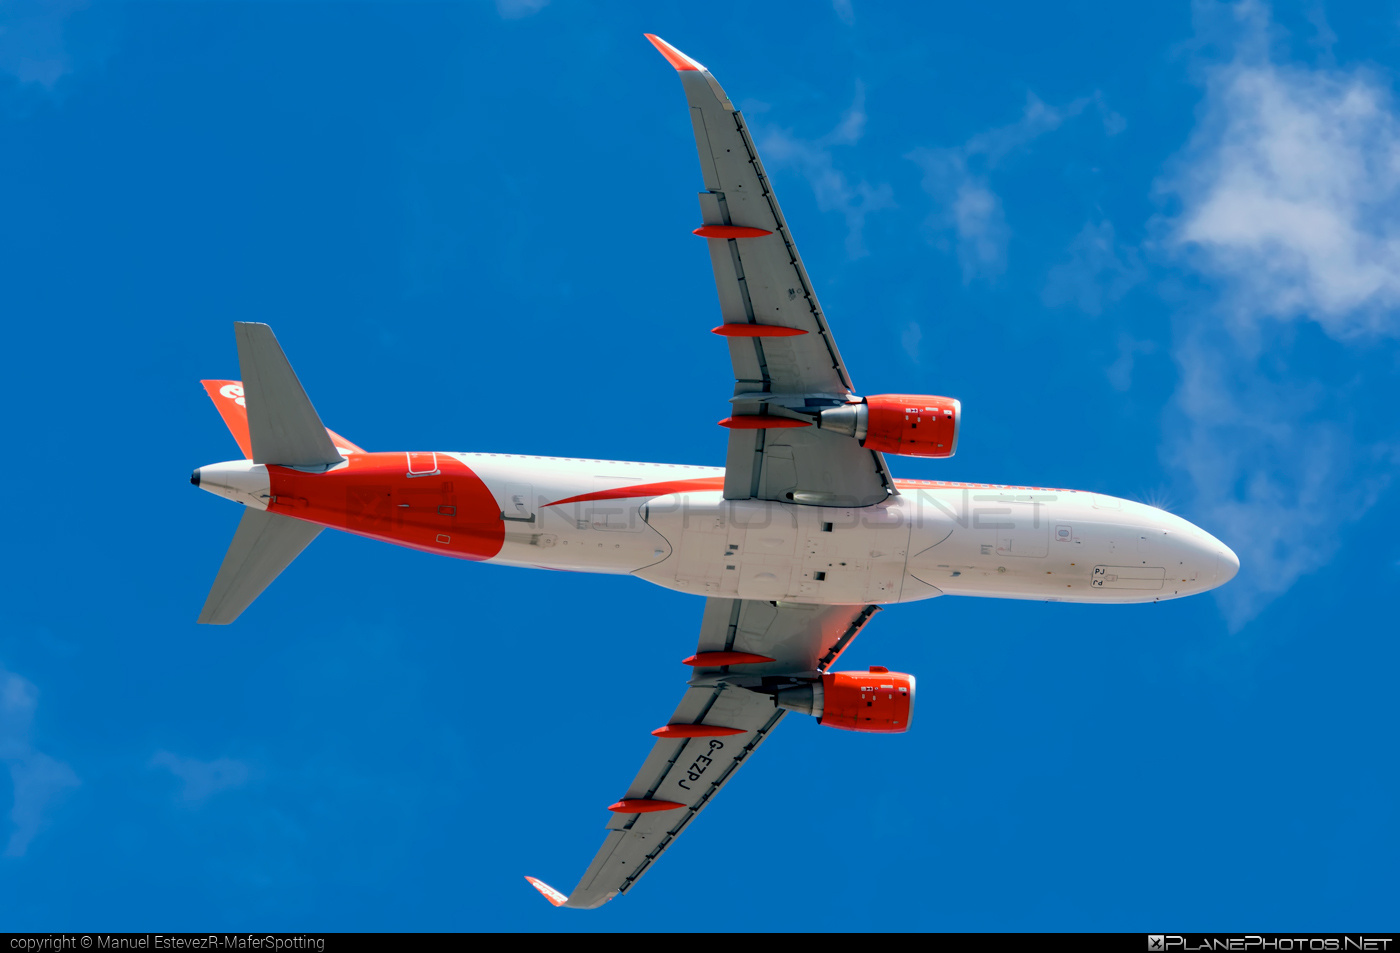 Airbus A320-214 - G-EZPJ operated by easyJet #a320 #a320family #airbus #airbus320 #easyjet